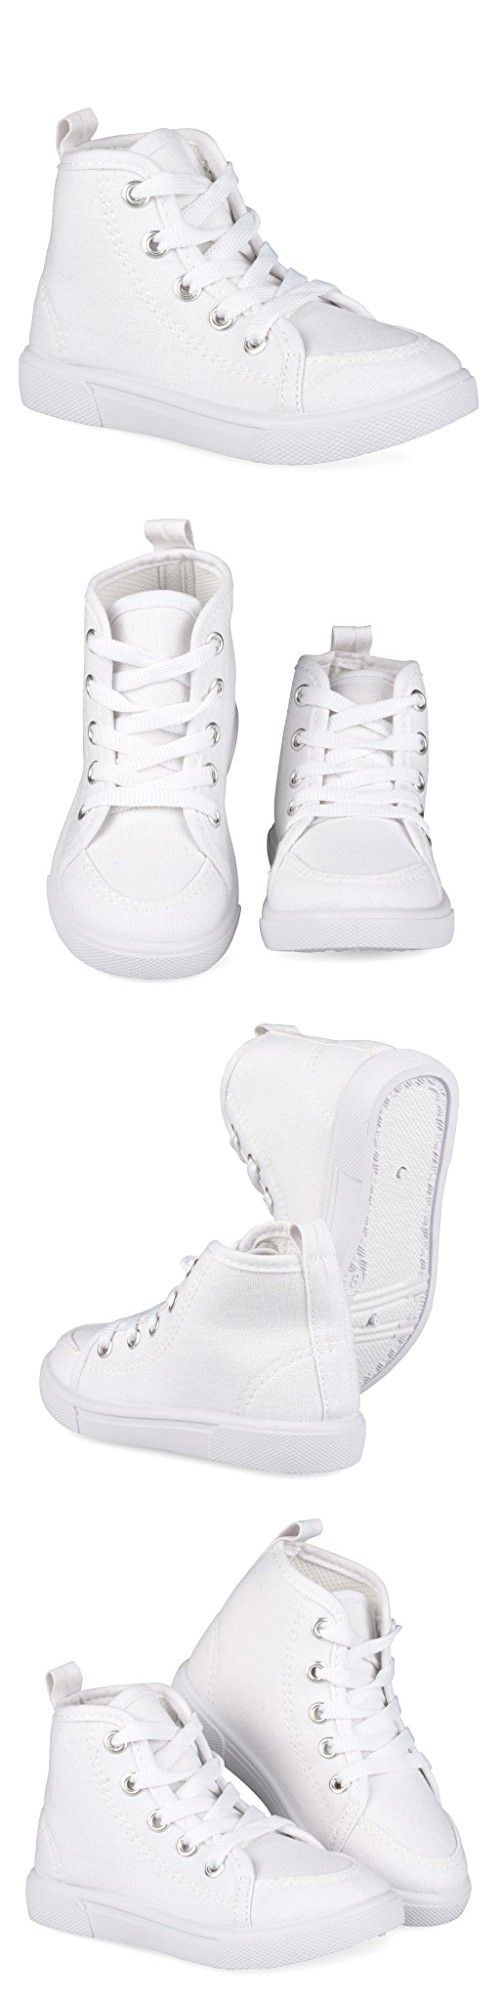 [SAN100-WHT-5] Girls High Top Sneakers: White Canvas Lace Up Shoes, Size 5